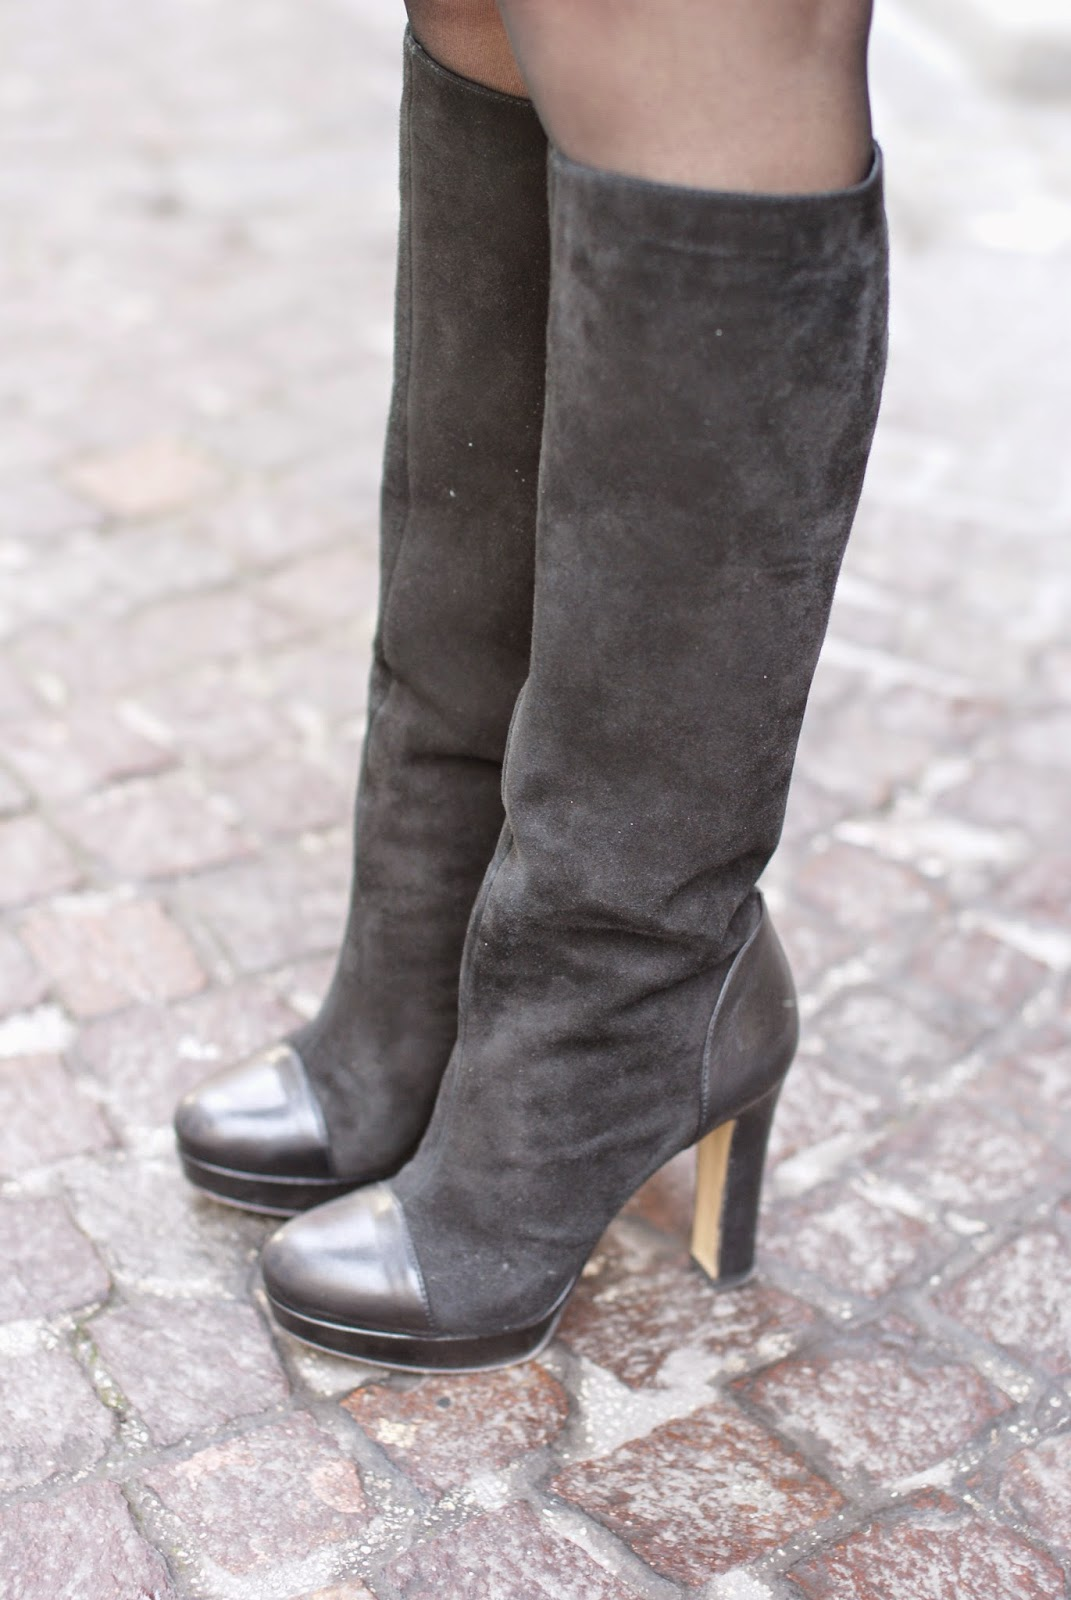 Gaia d'Este cap toe boots in suede and leather, Fashion and Cookies, fashion blogger